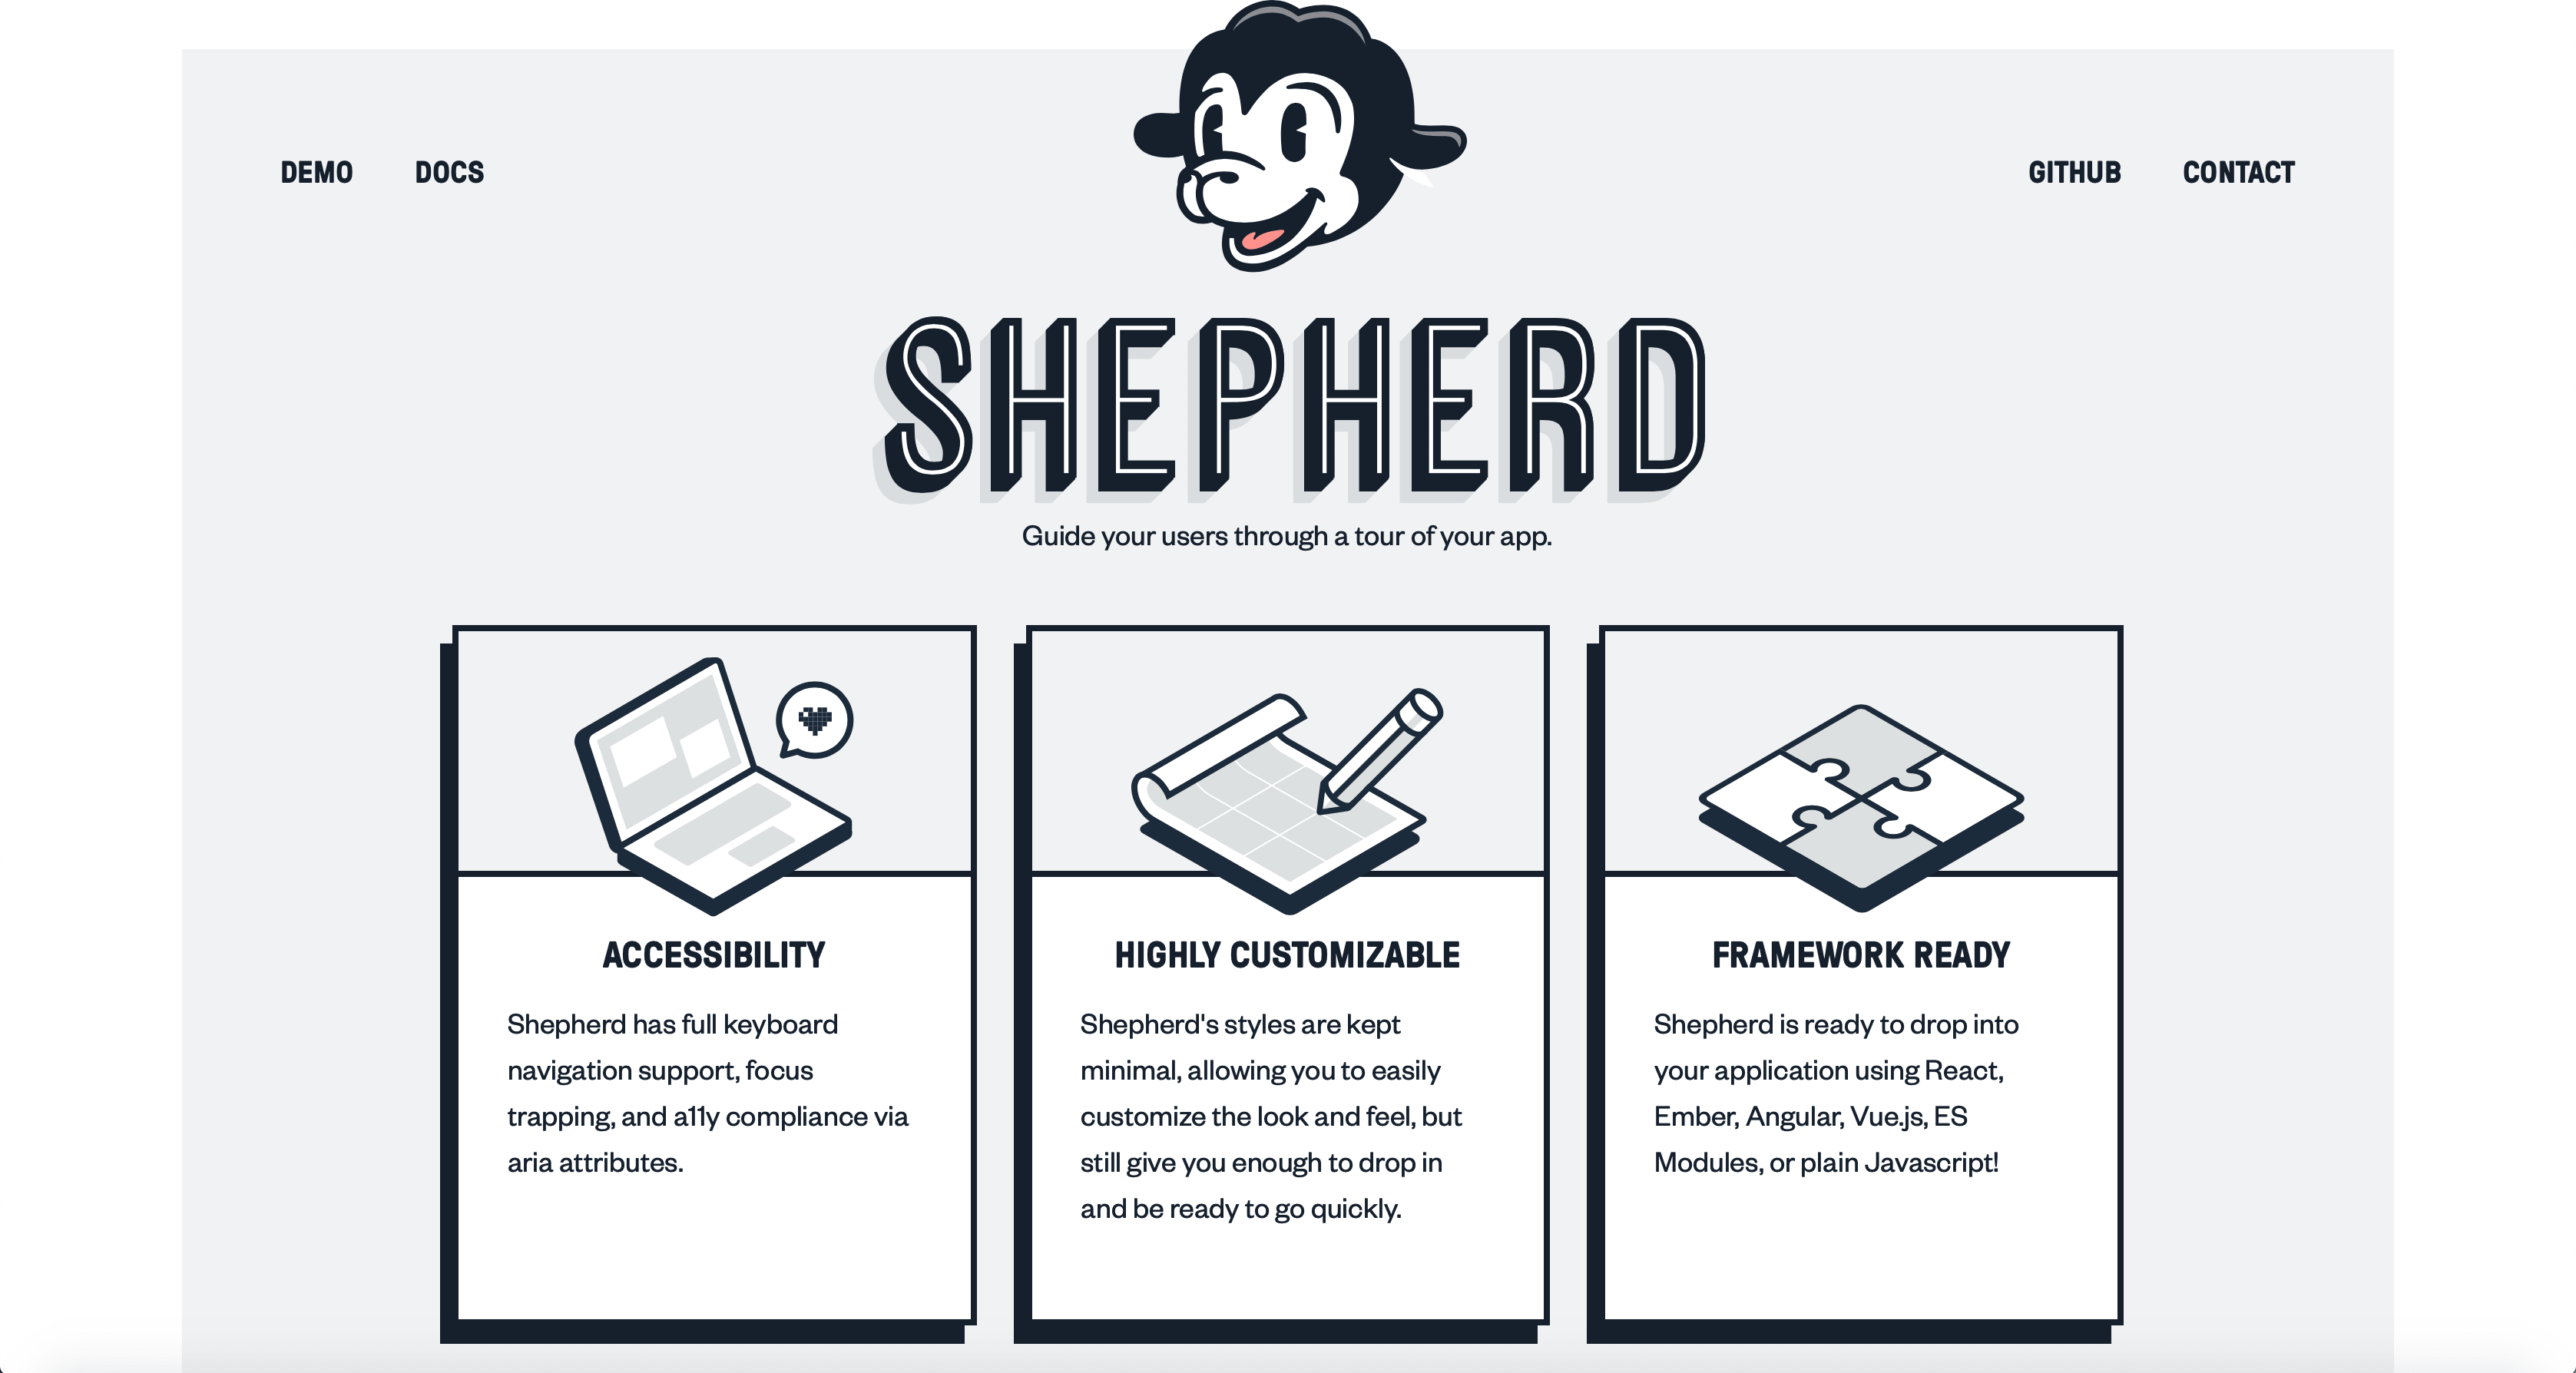 Image of Latest Shepherd Website